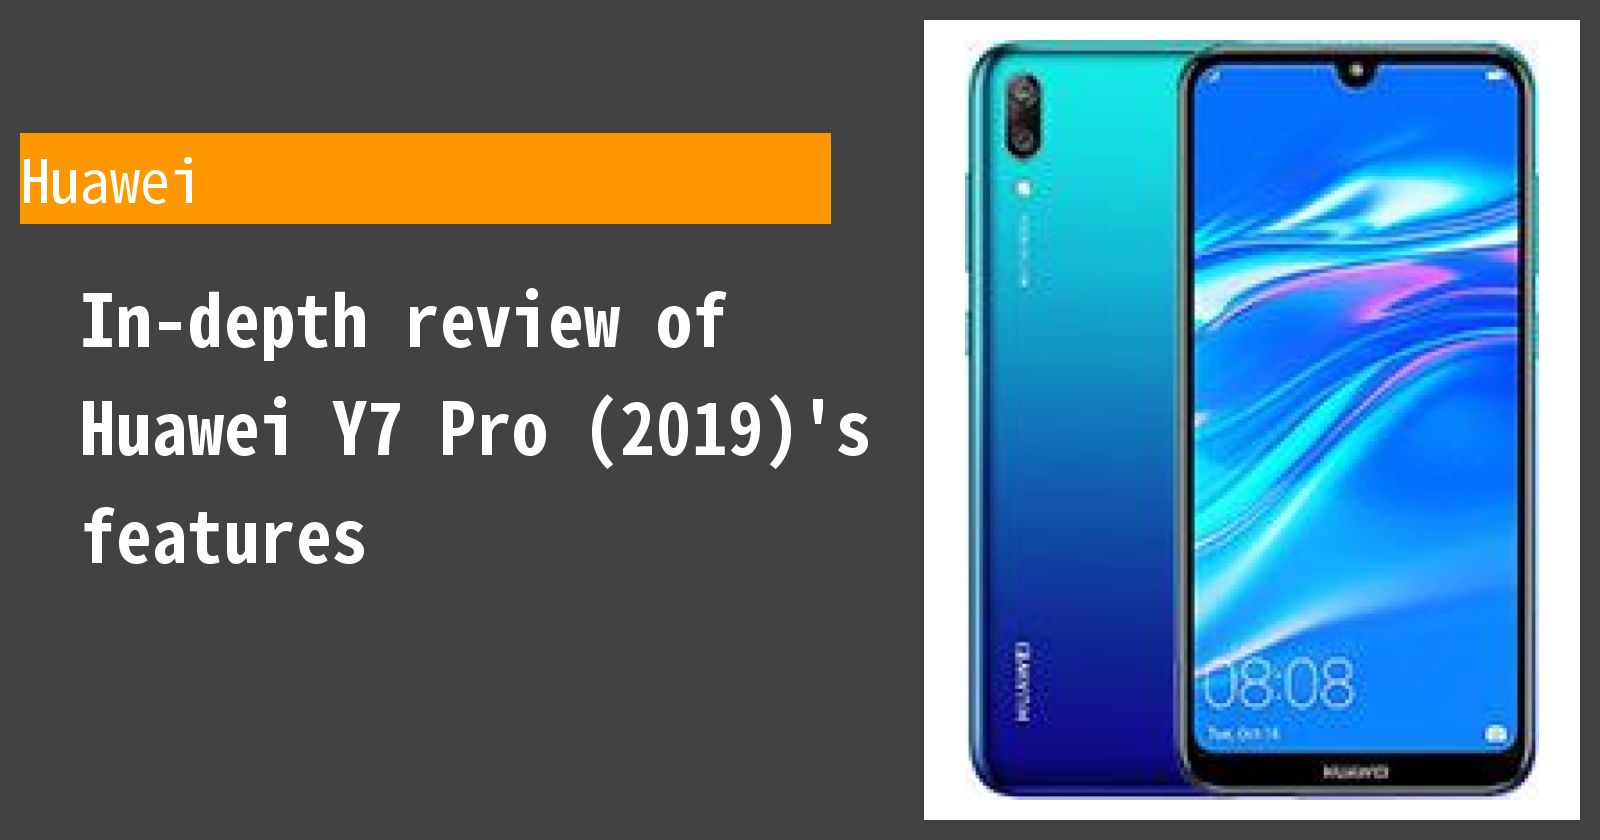 Review of Huawei Y7 Pro (2019)  Thorough explanation of the